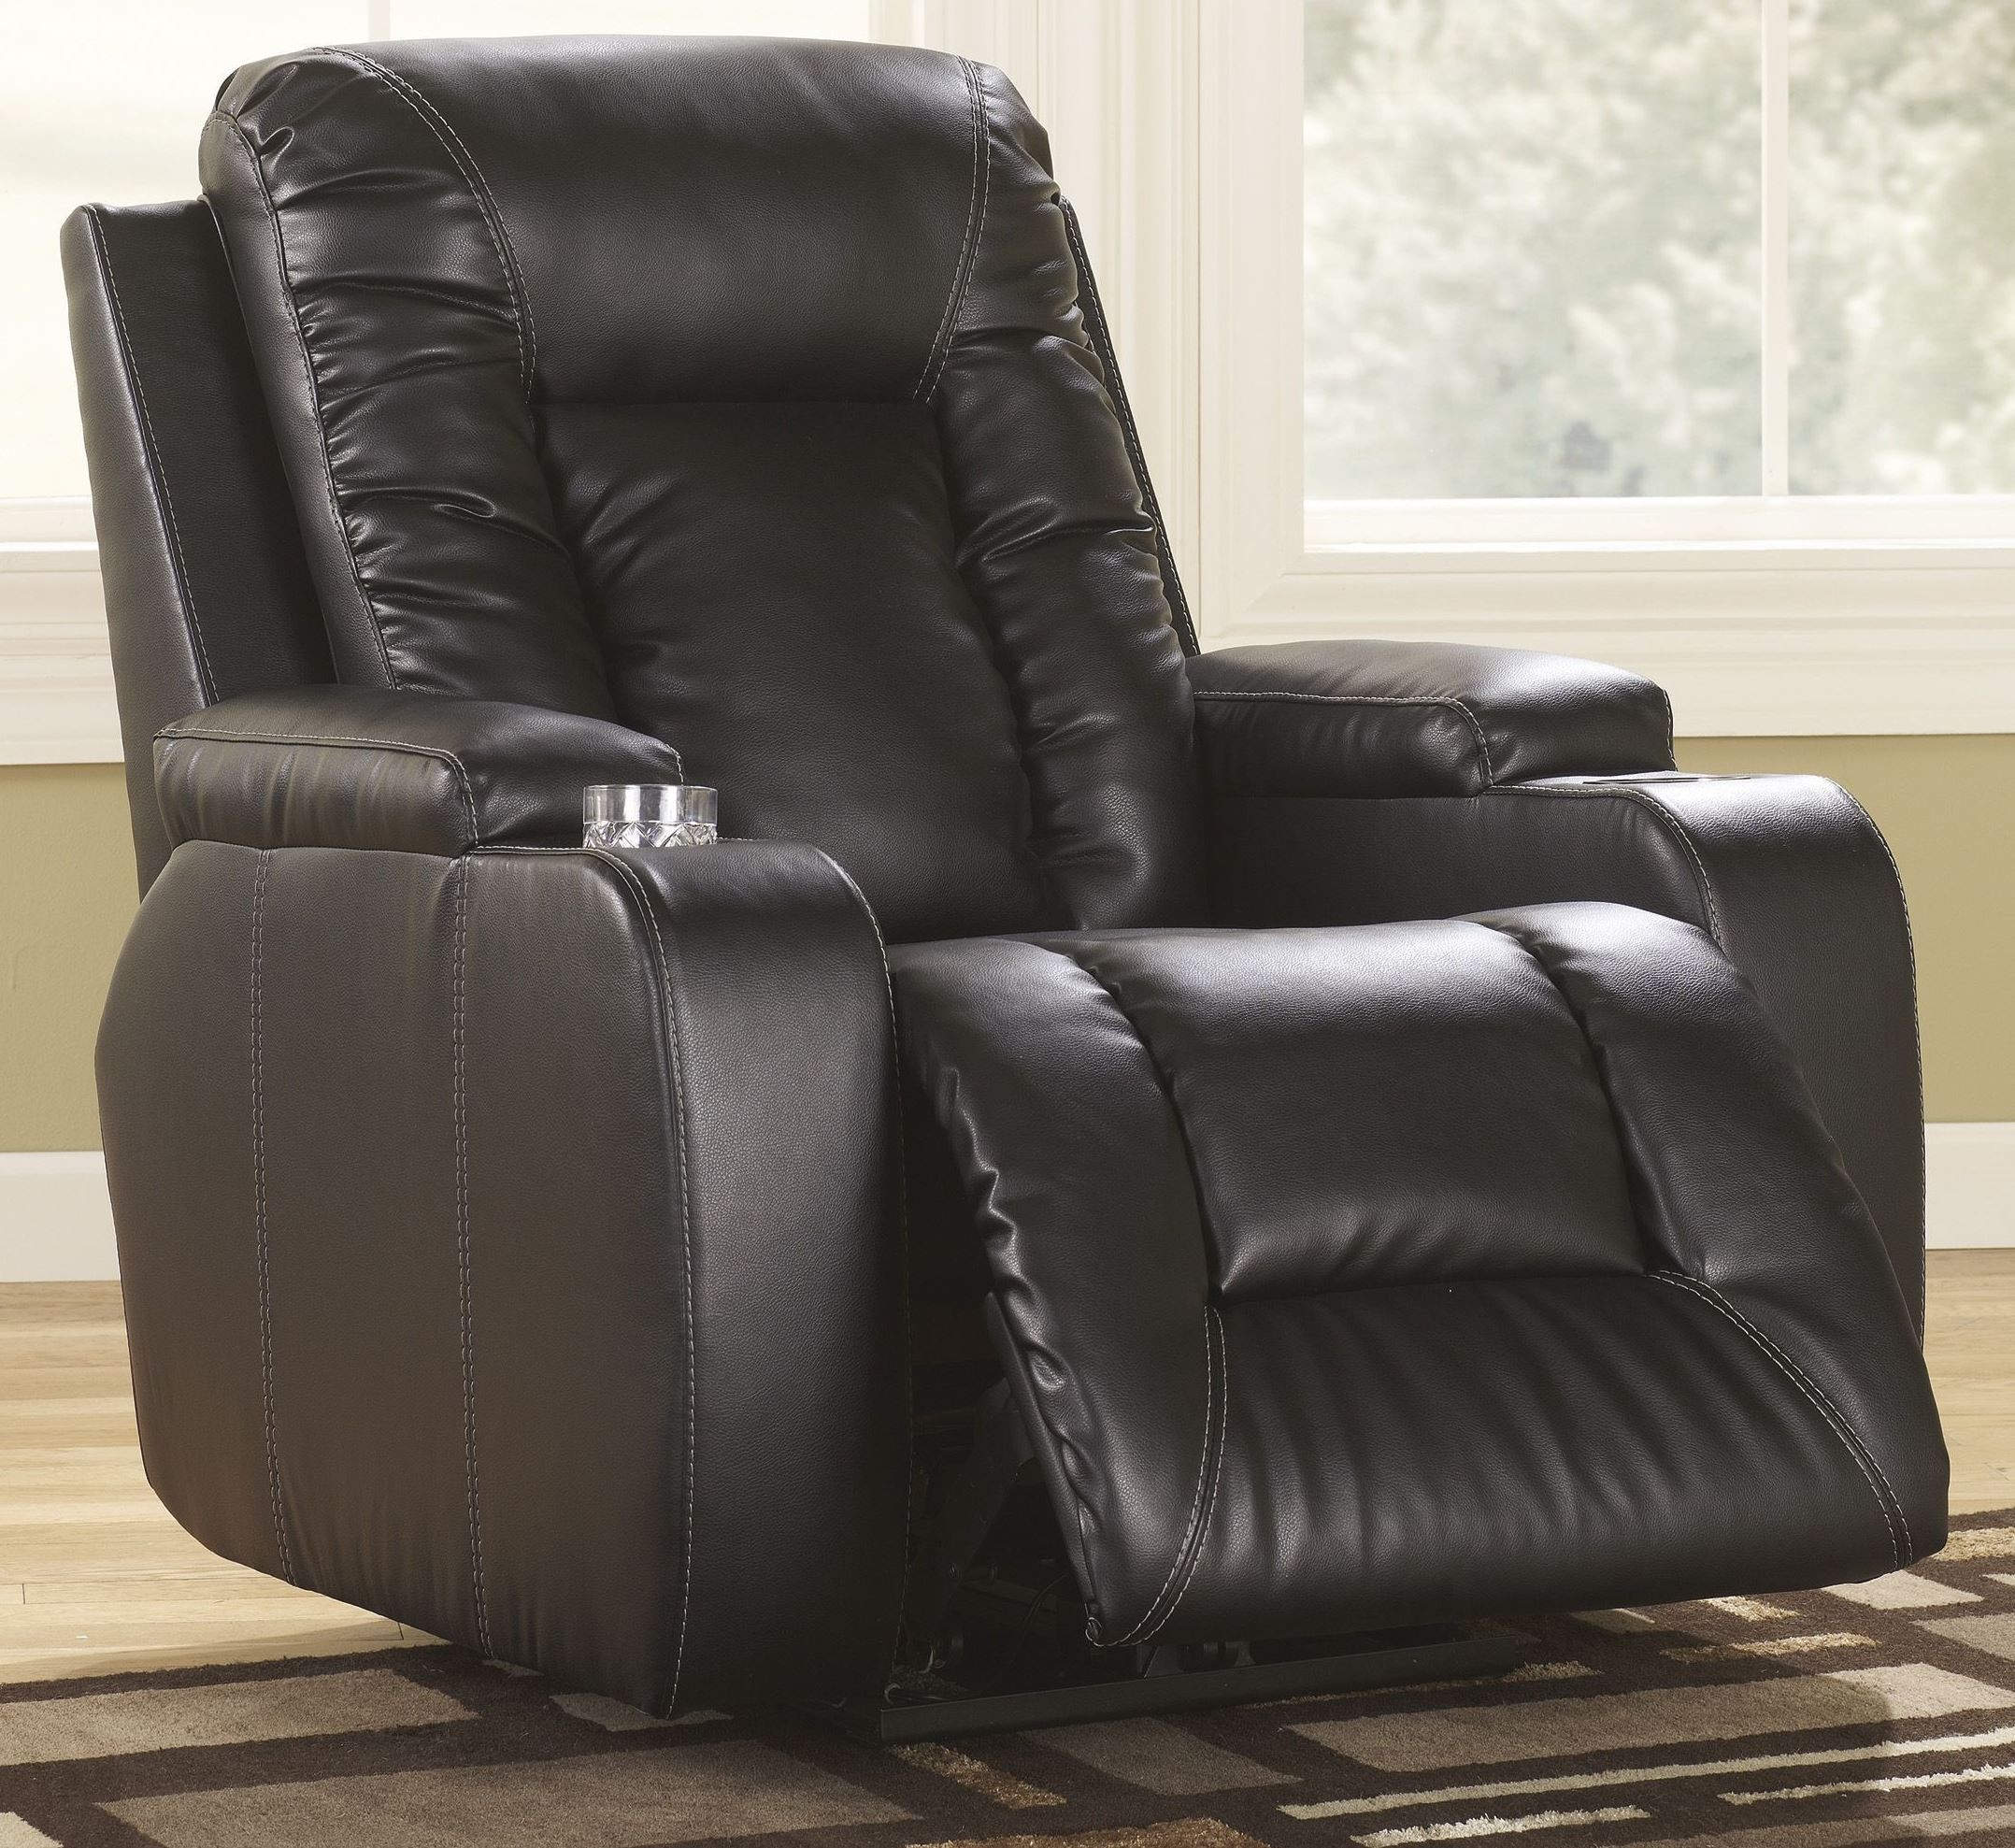 Ashley Furniture Arcadia: Matinee Durablend Home Theater Seating From Ashley